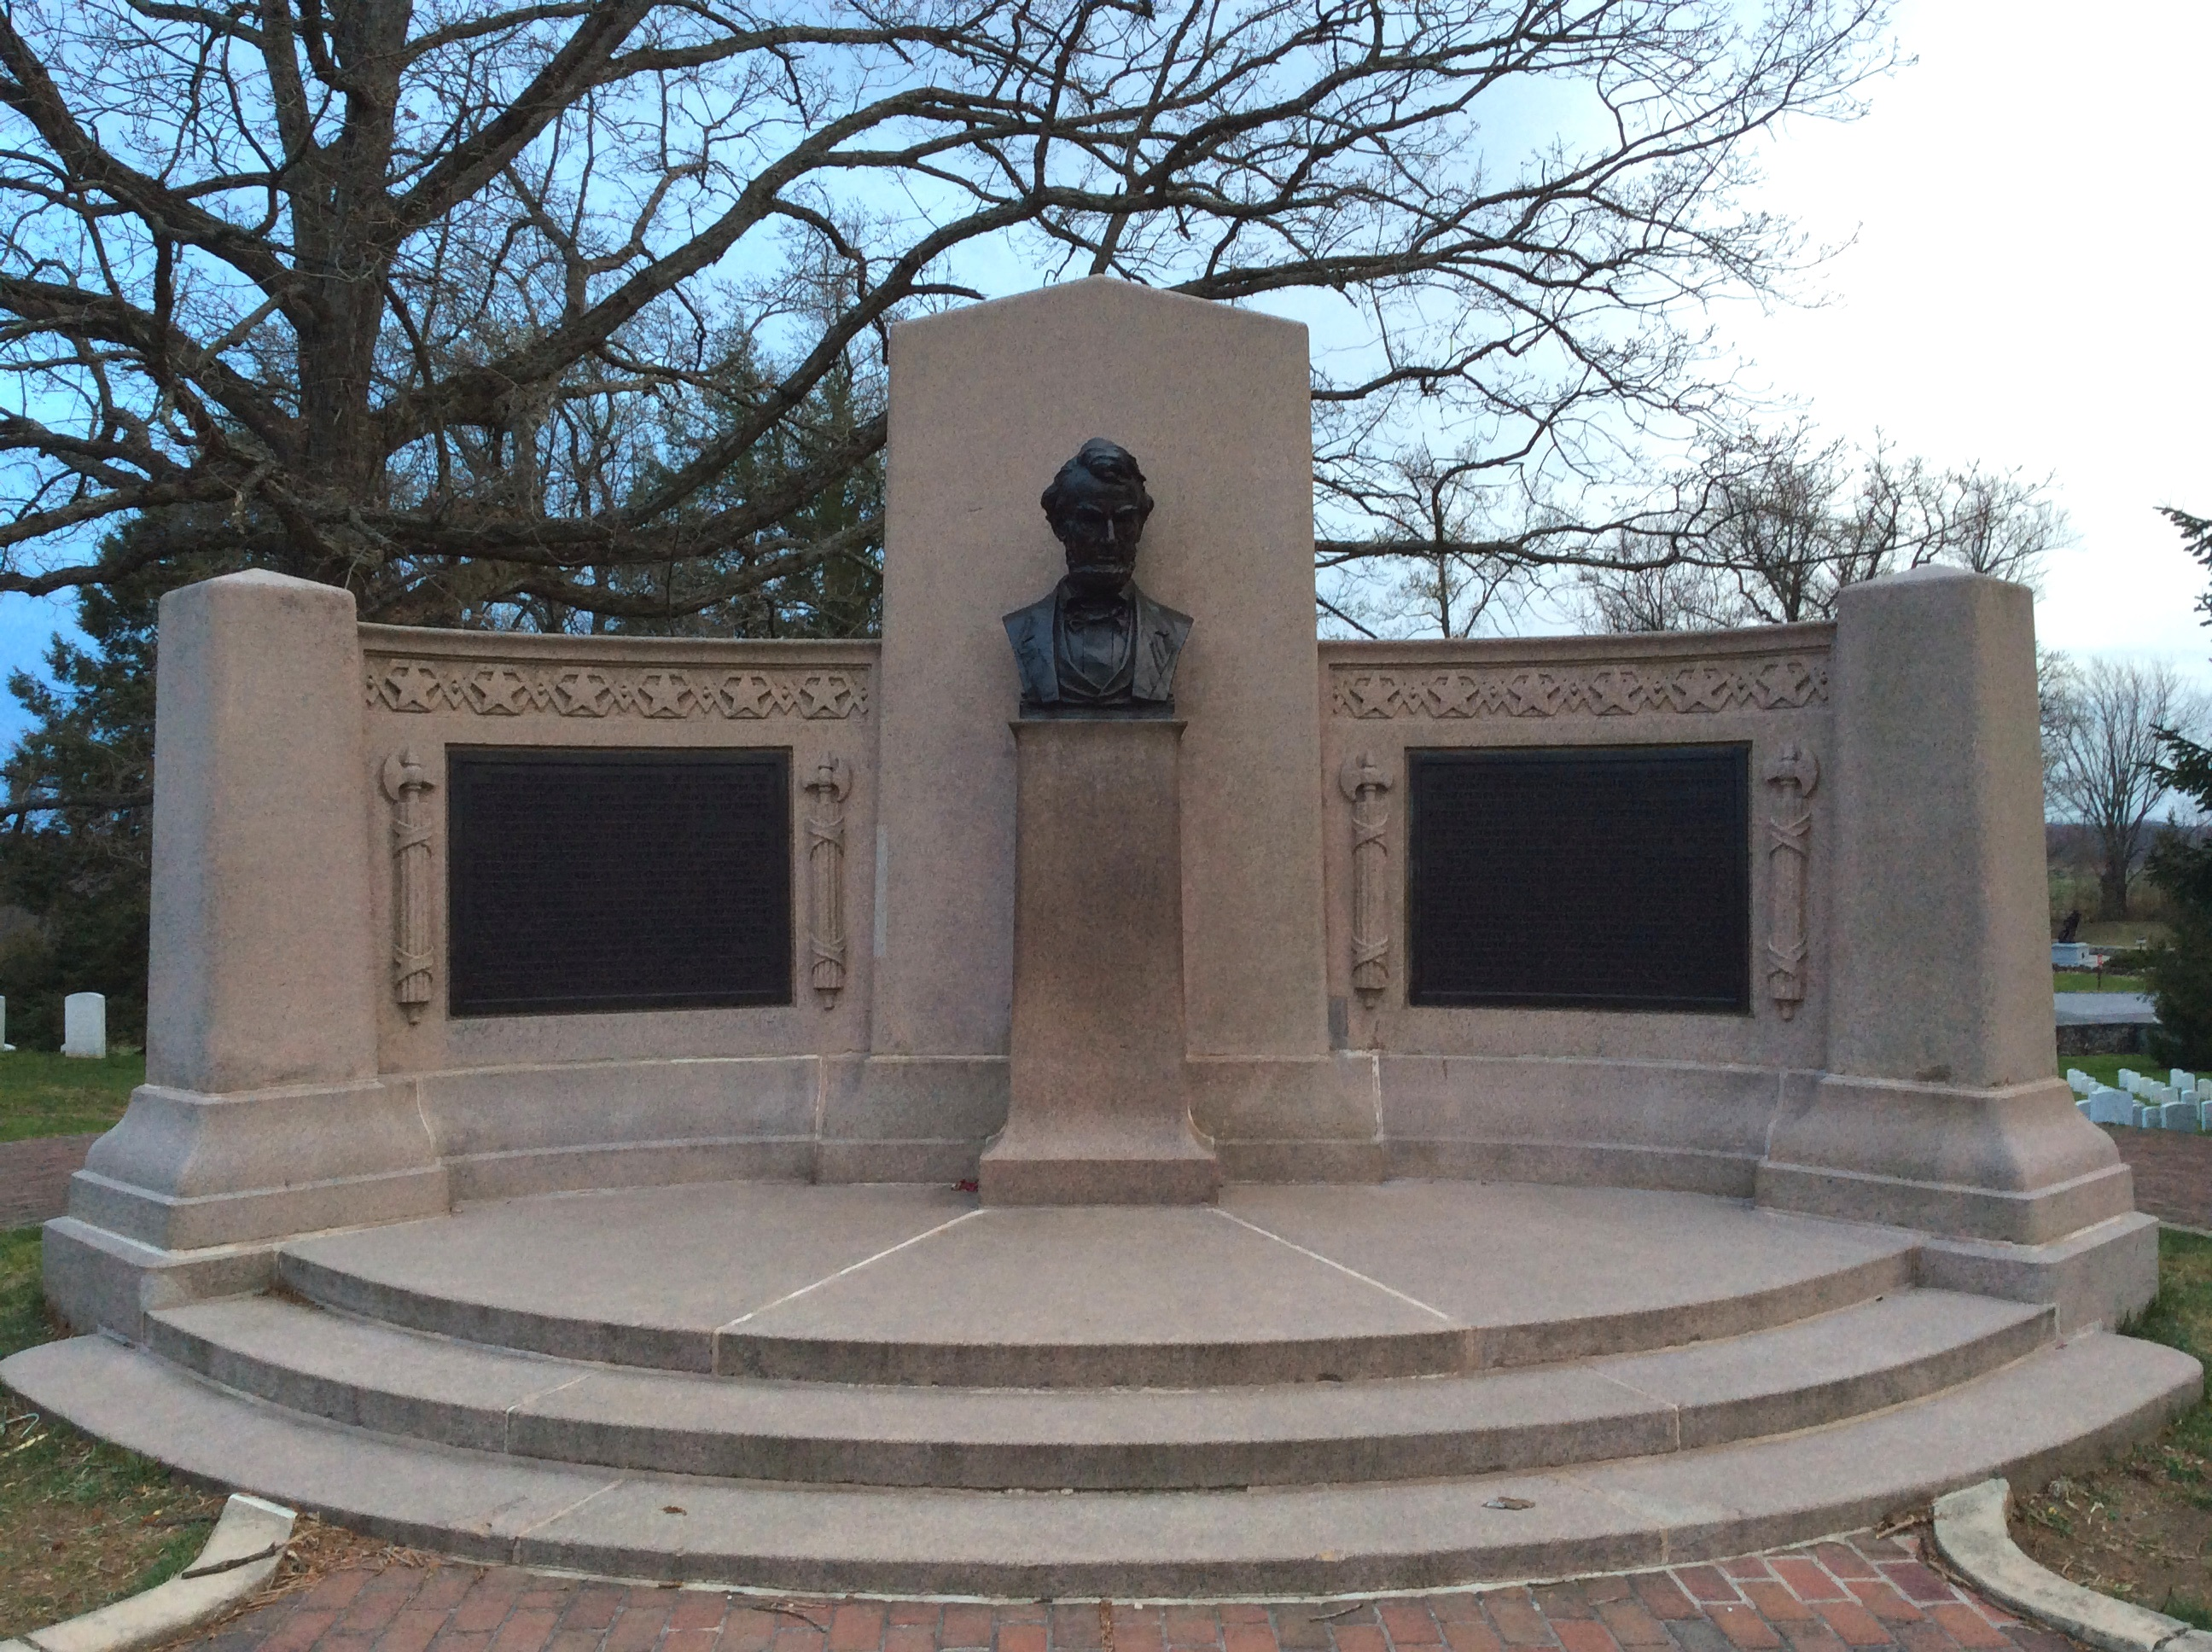 gettysburg address ordinary philosophy lincoln s gettysburg address memorial at ier s national cemetery